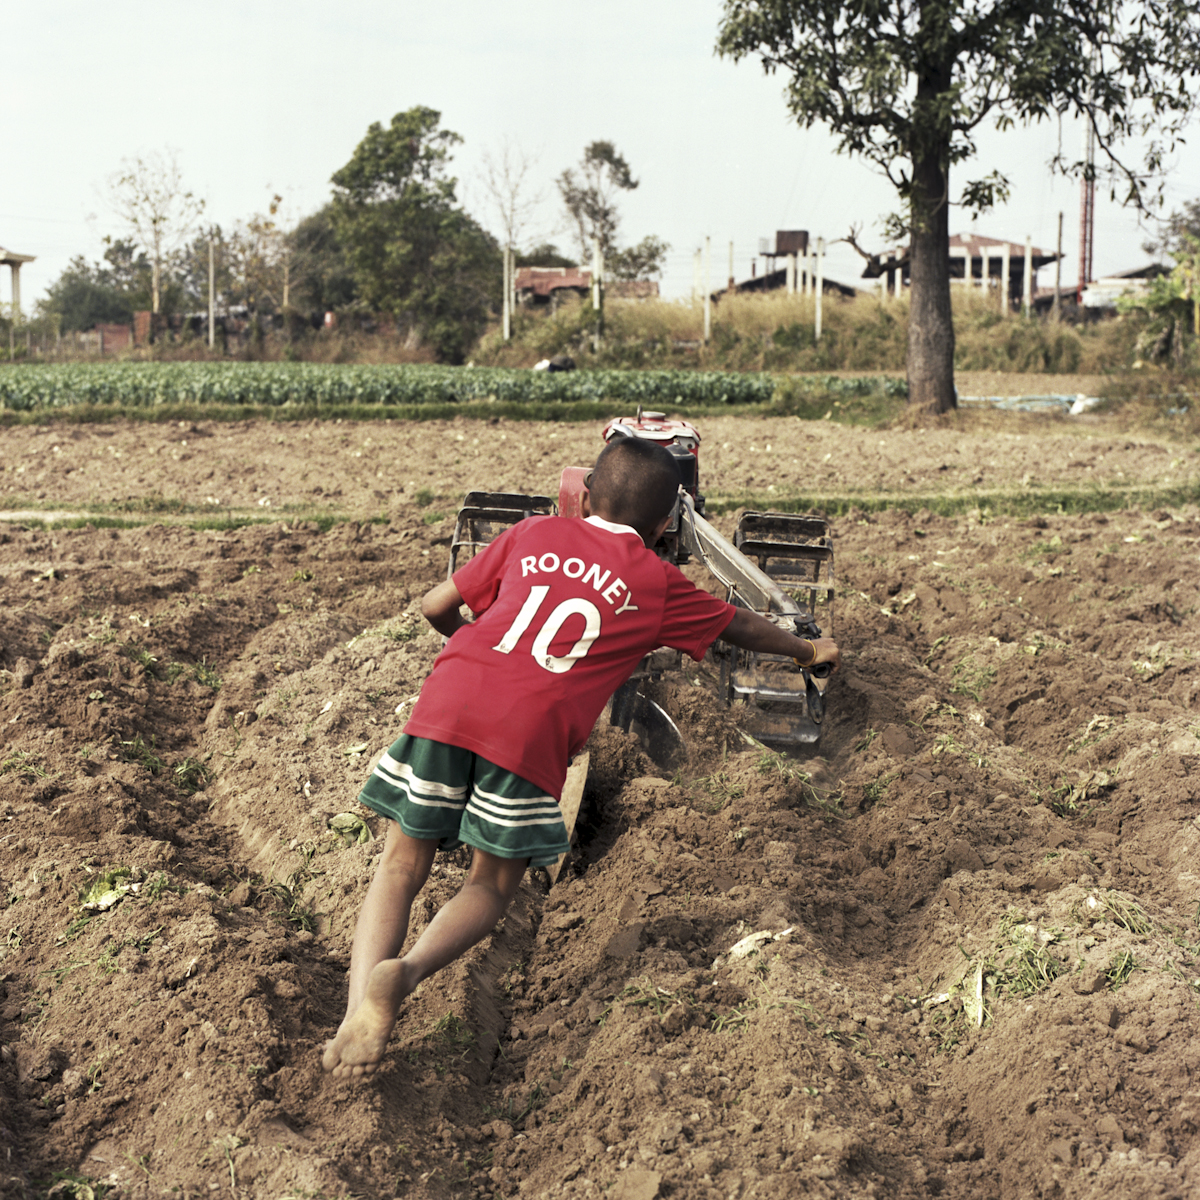 10-year-old Bounphang Sihavong helps out on the family farm.